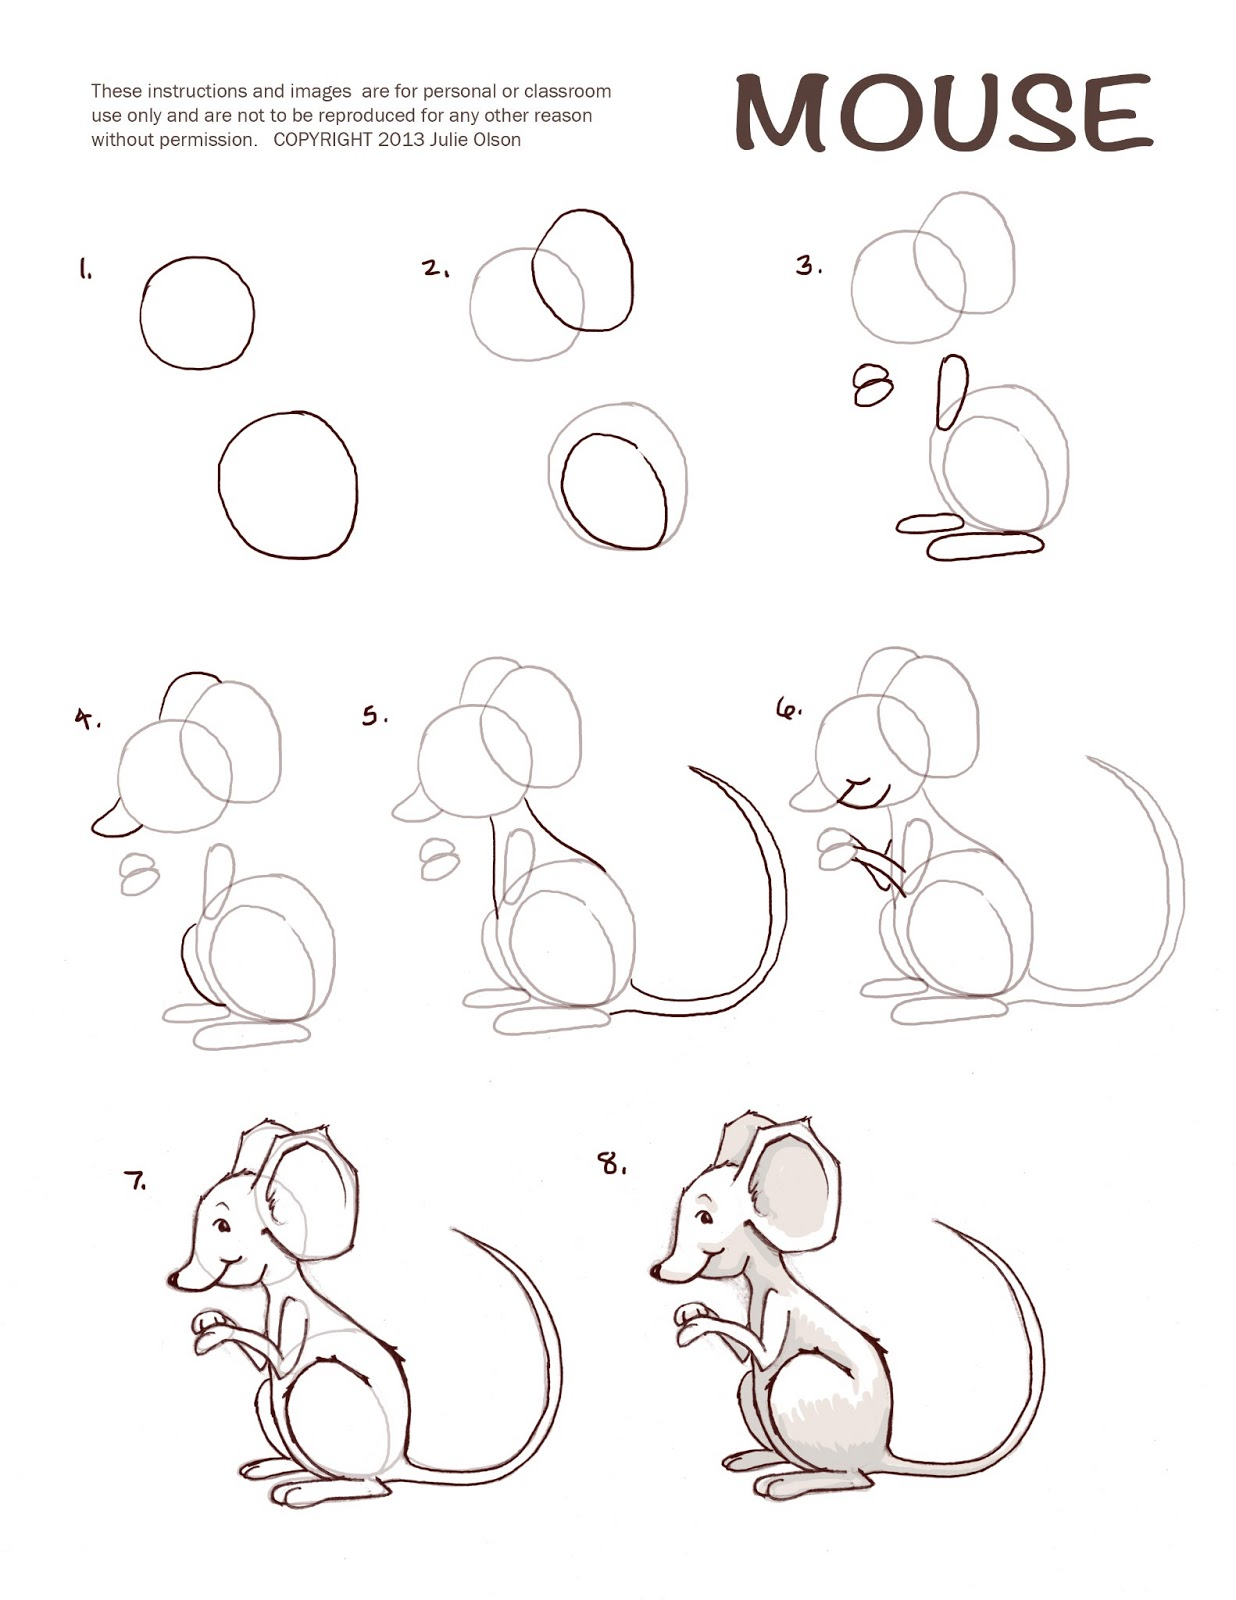 Julie olson books author illustrator printables for How to draw with a mouse